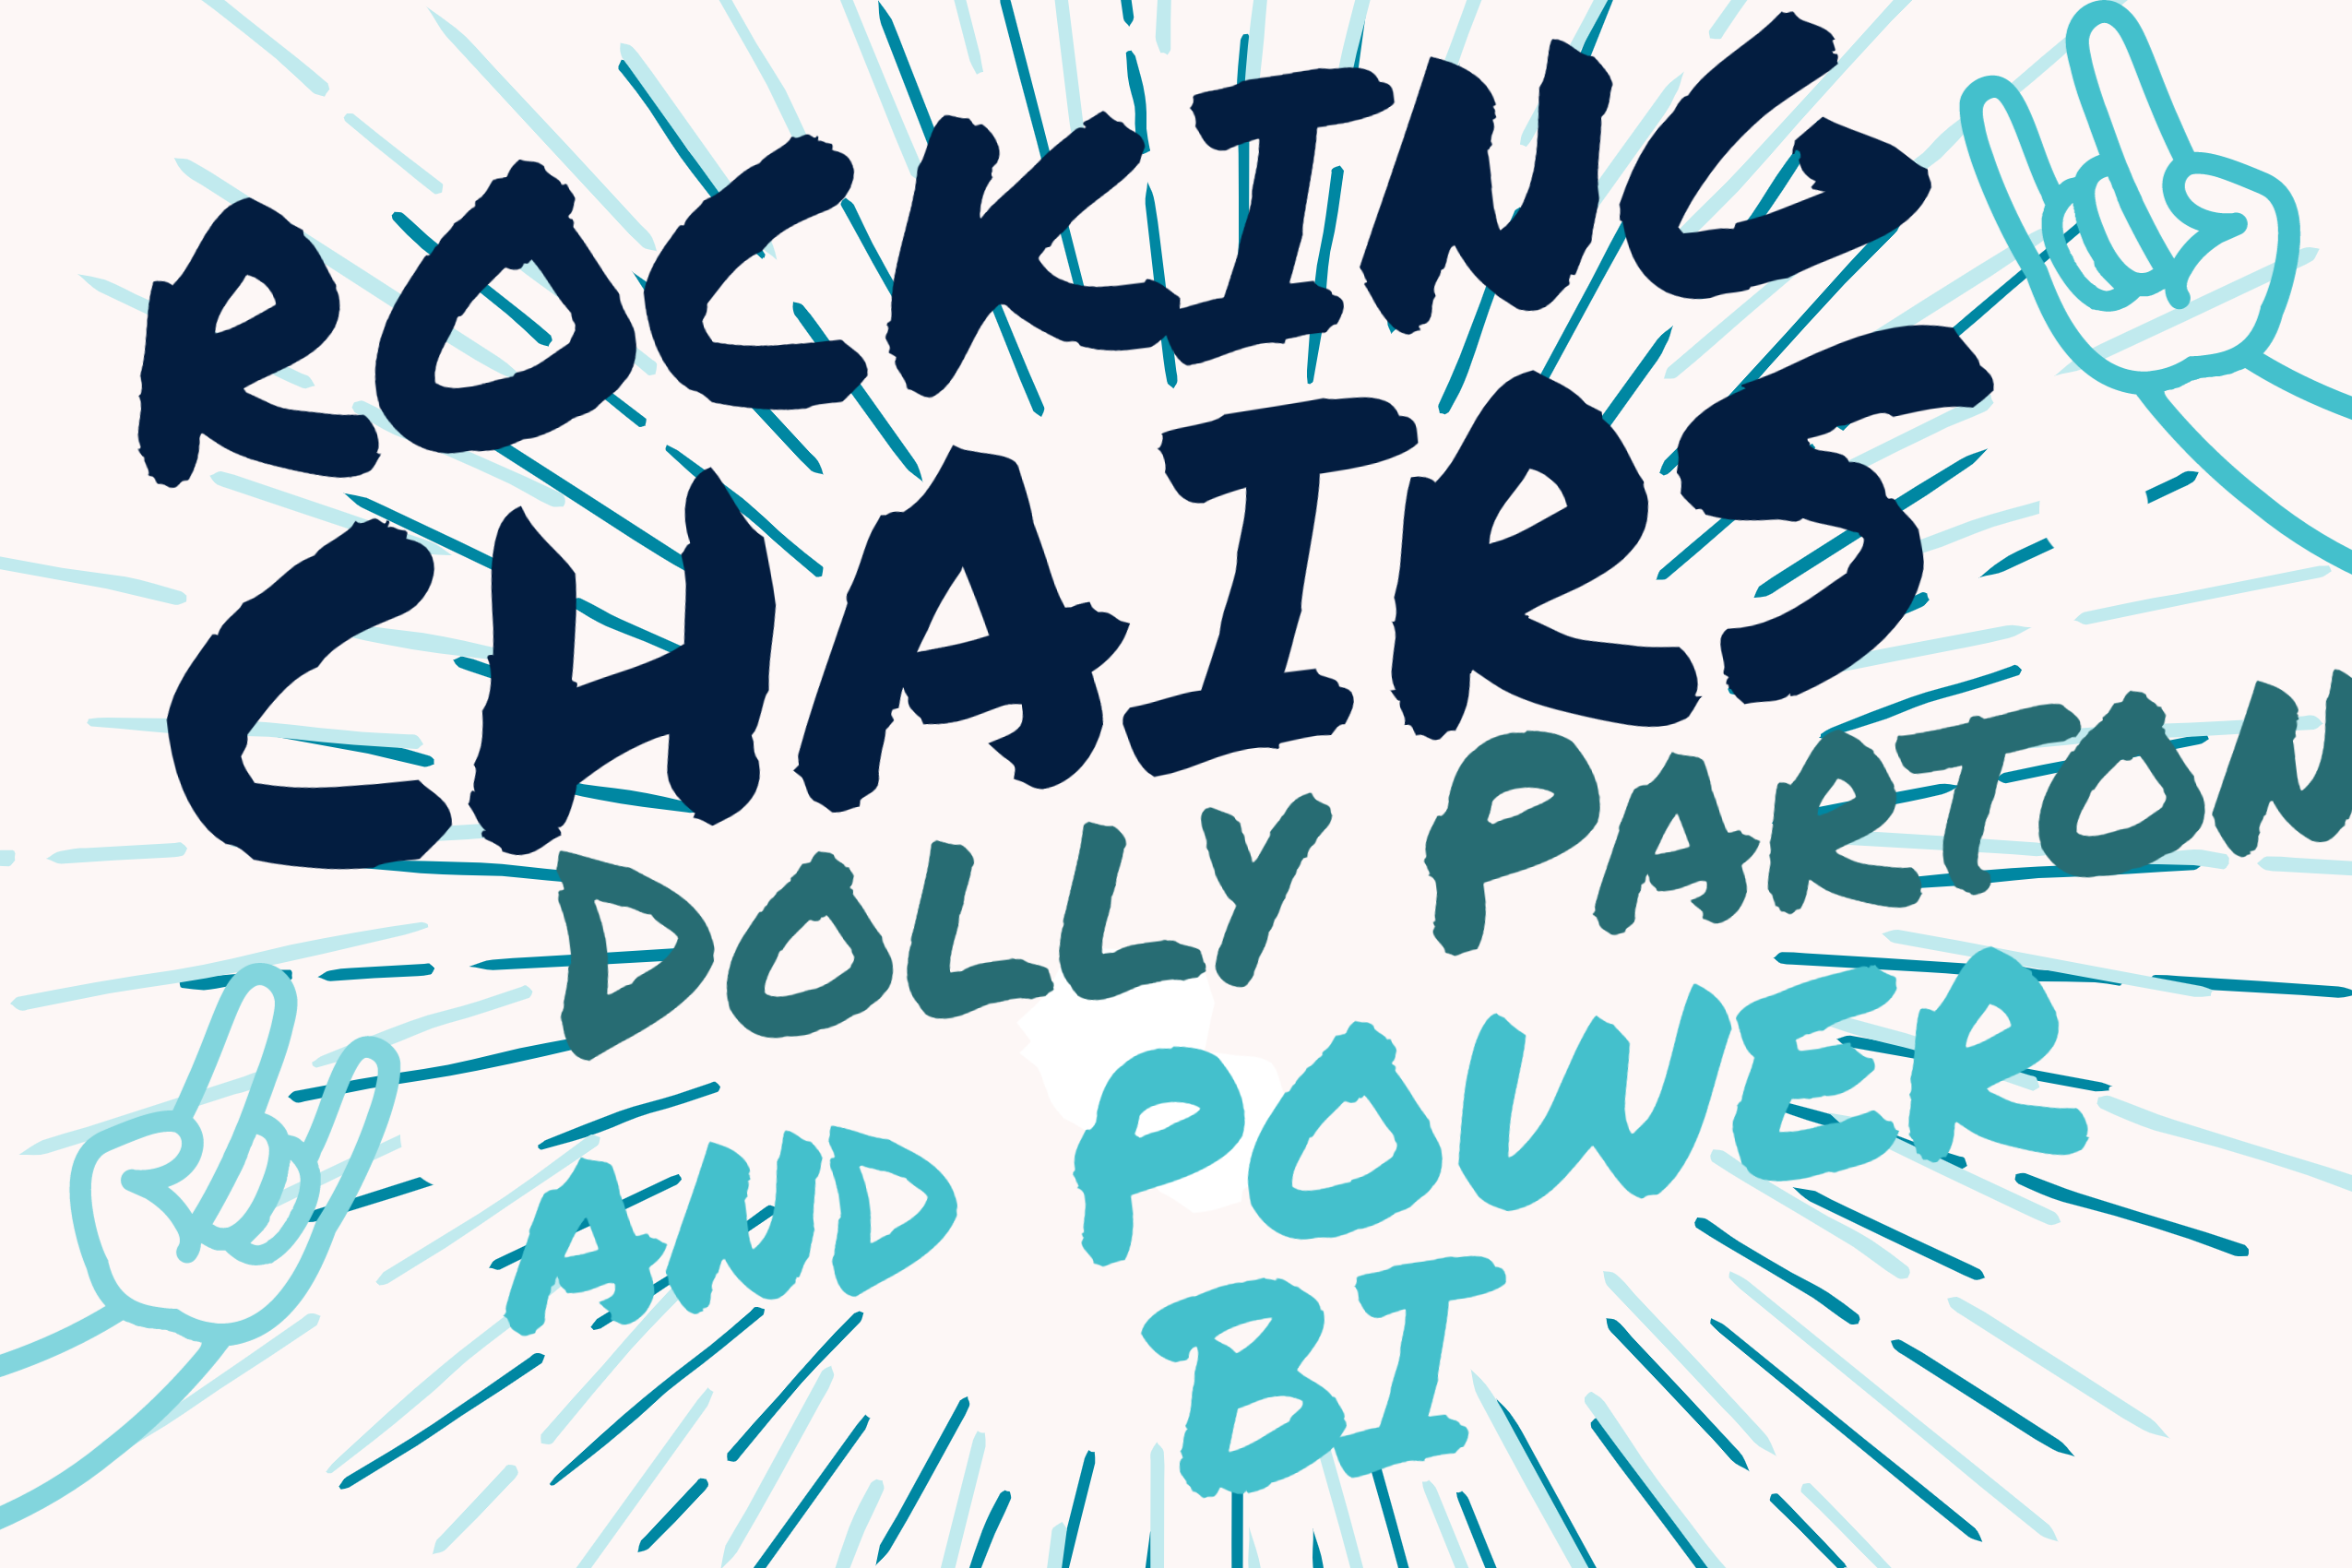 Rocking Chairs, Dolly Parton and Power BI